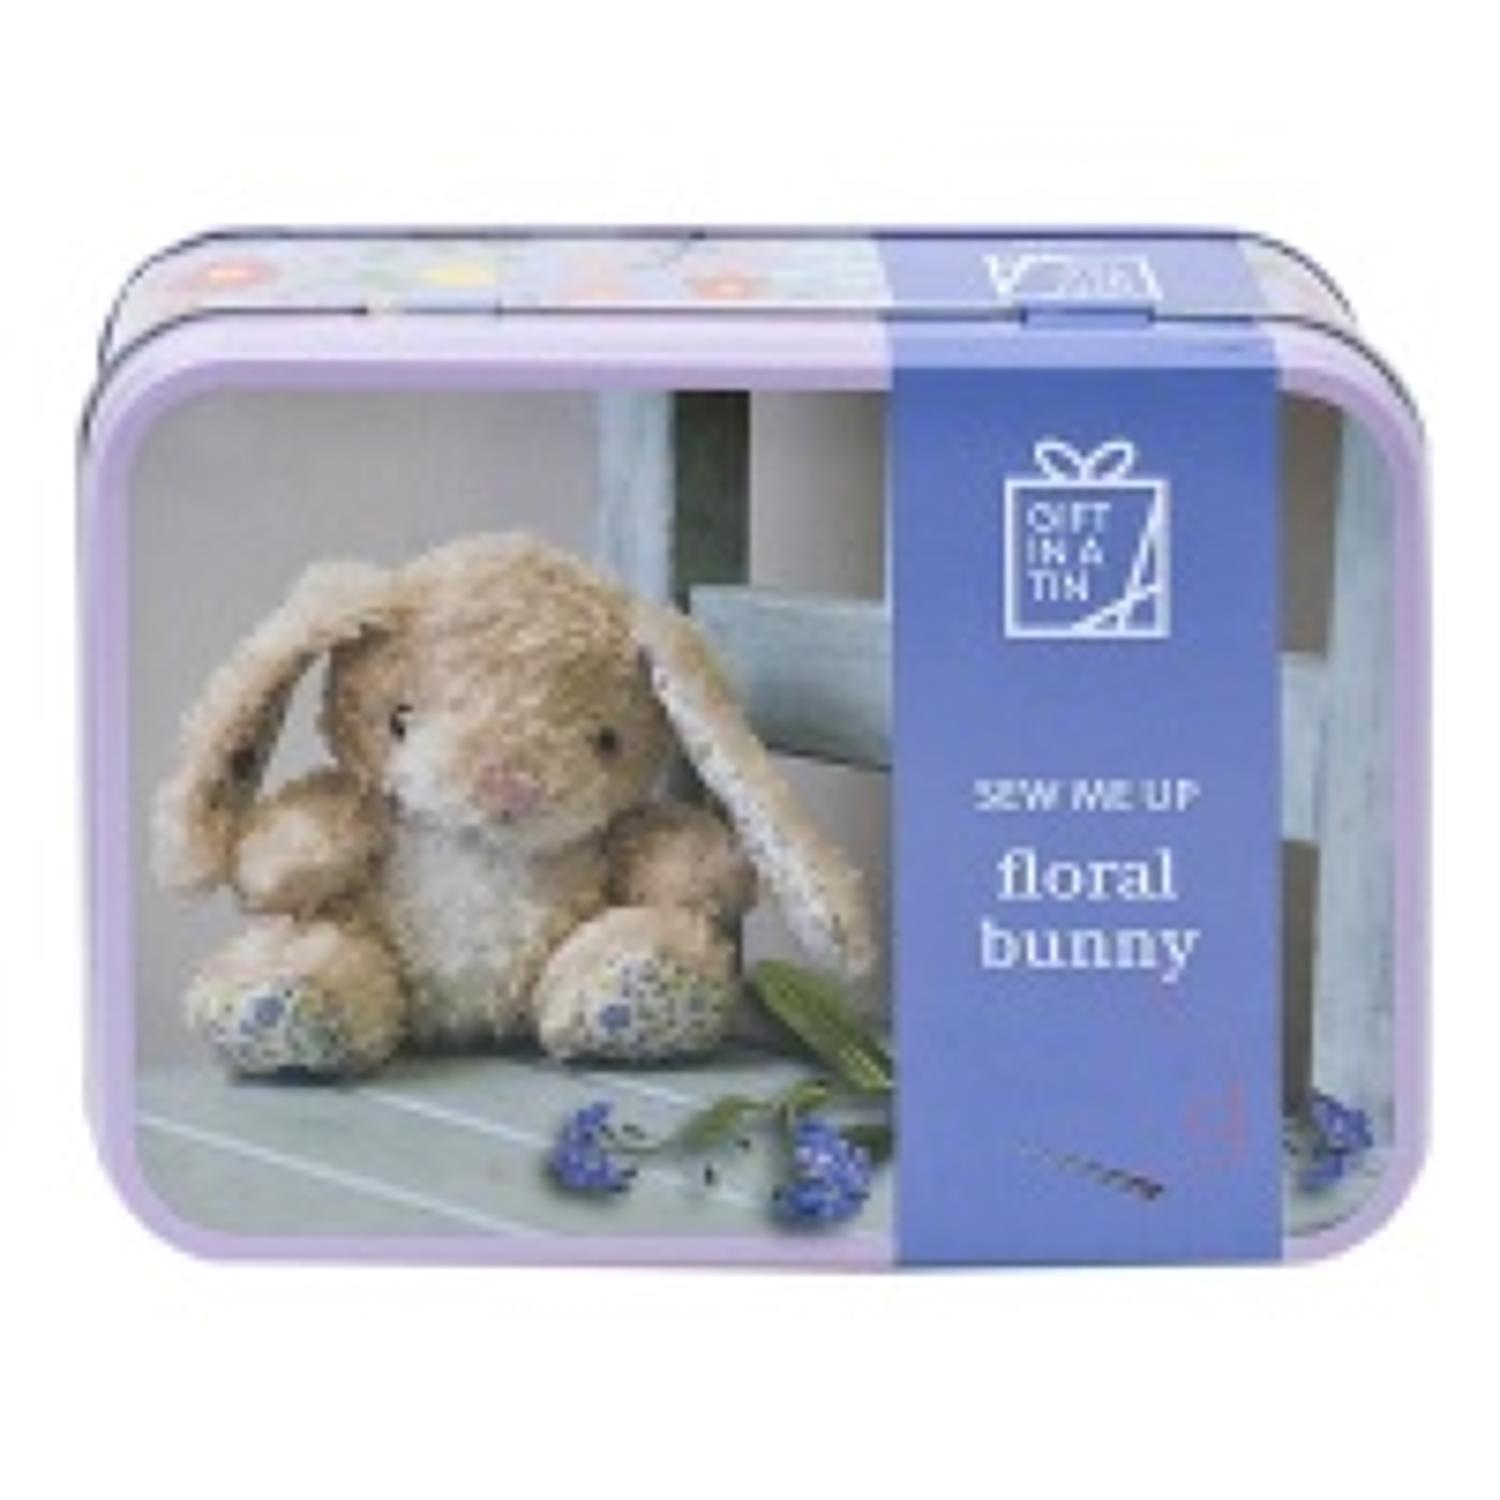 Gift in a Tin - Sew me up creatures - Floral Bunny